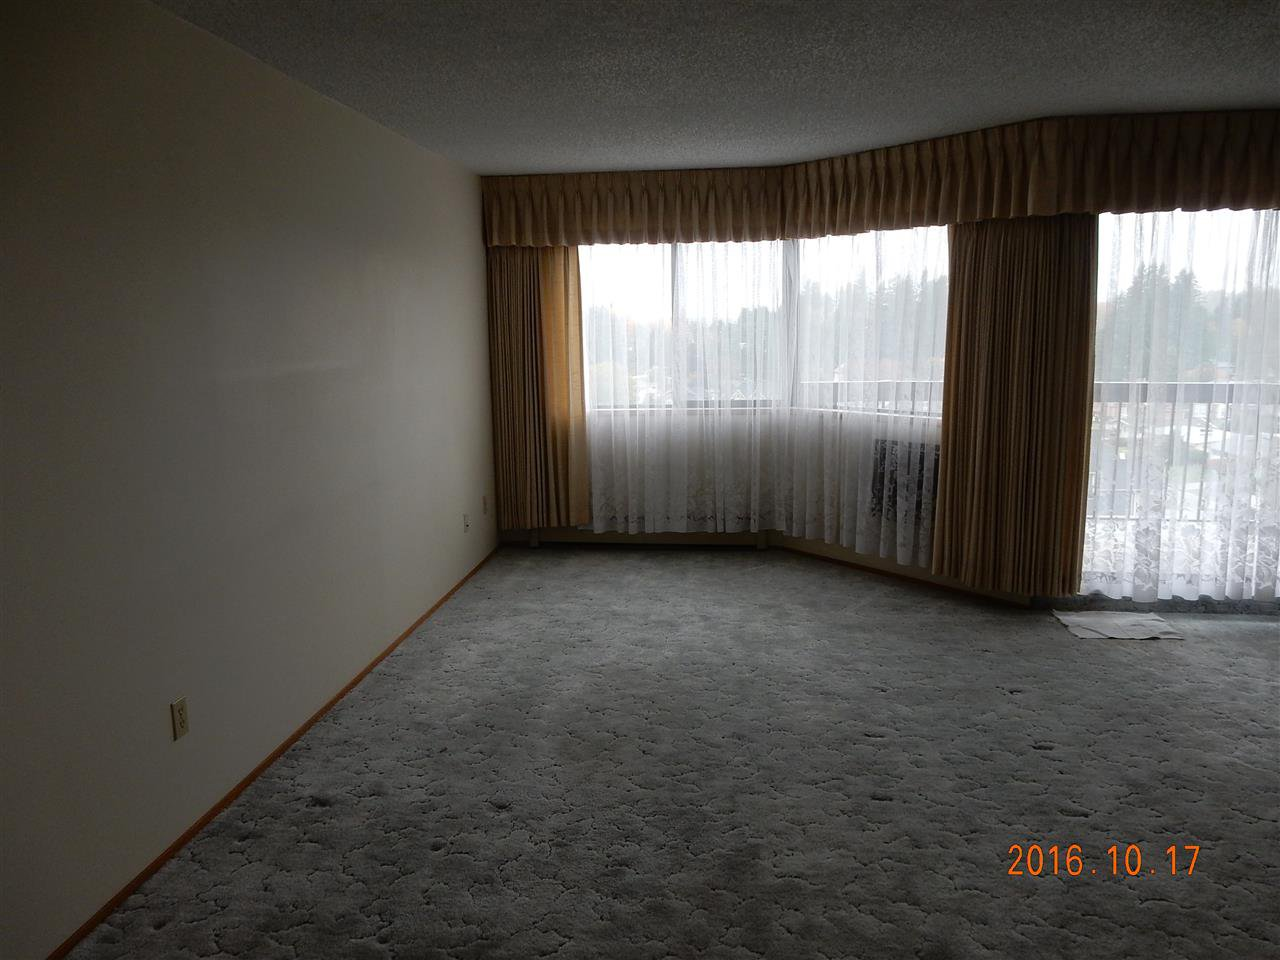 """Photo 7: Photos: 816 31955 OLD YALE Road in Abbotsford: Abbotsford West Condo for sale in """"Evergreen Village"""" : MLS®# R2117382"""